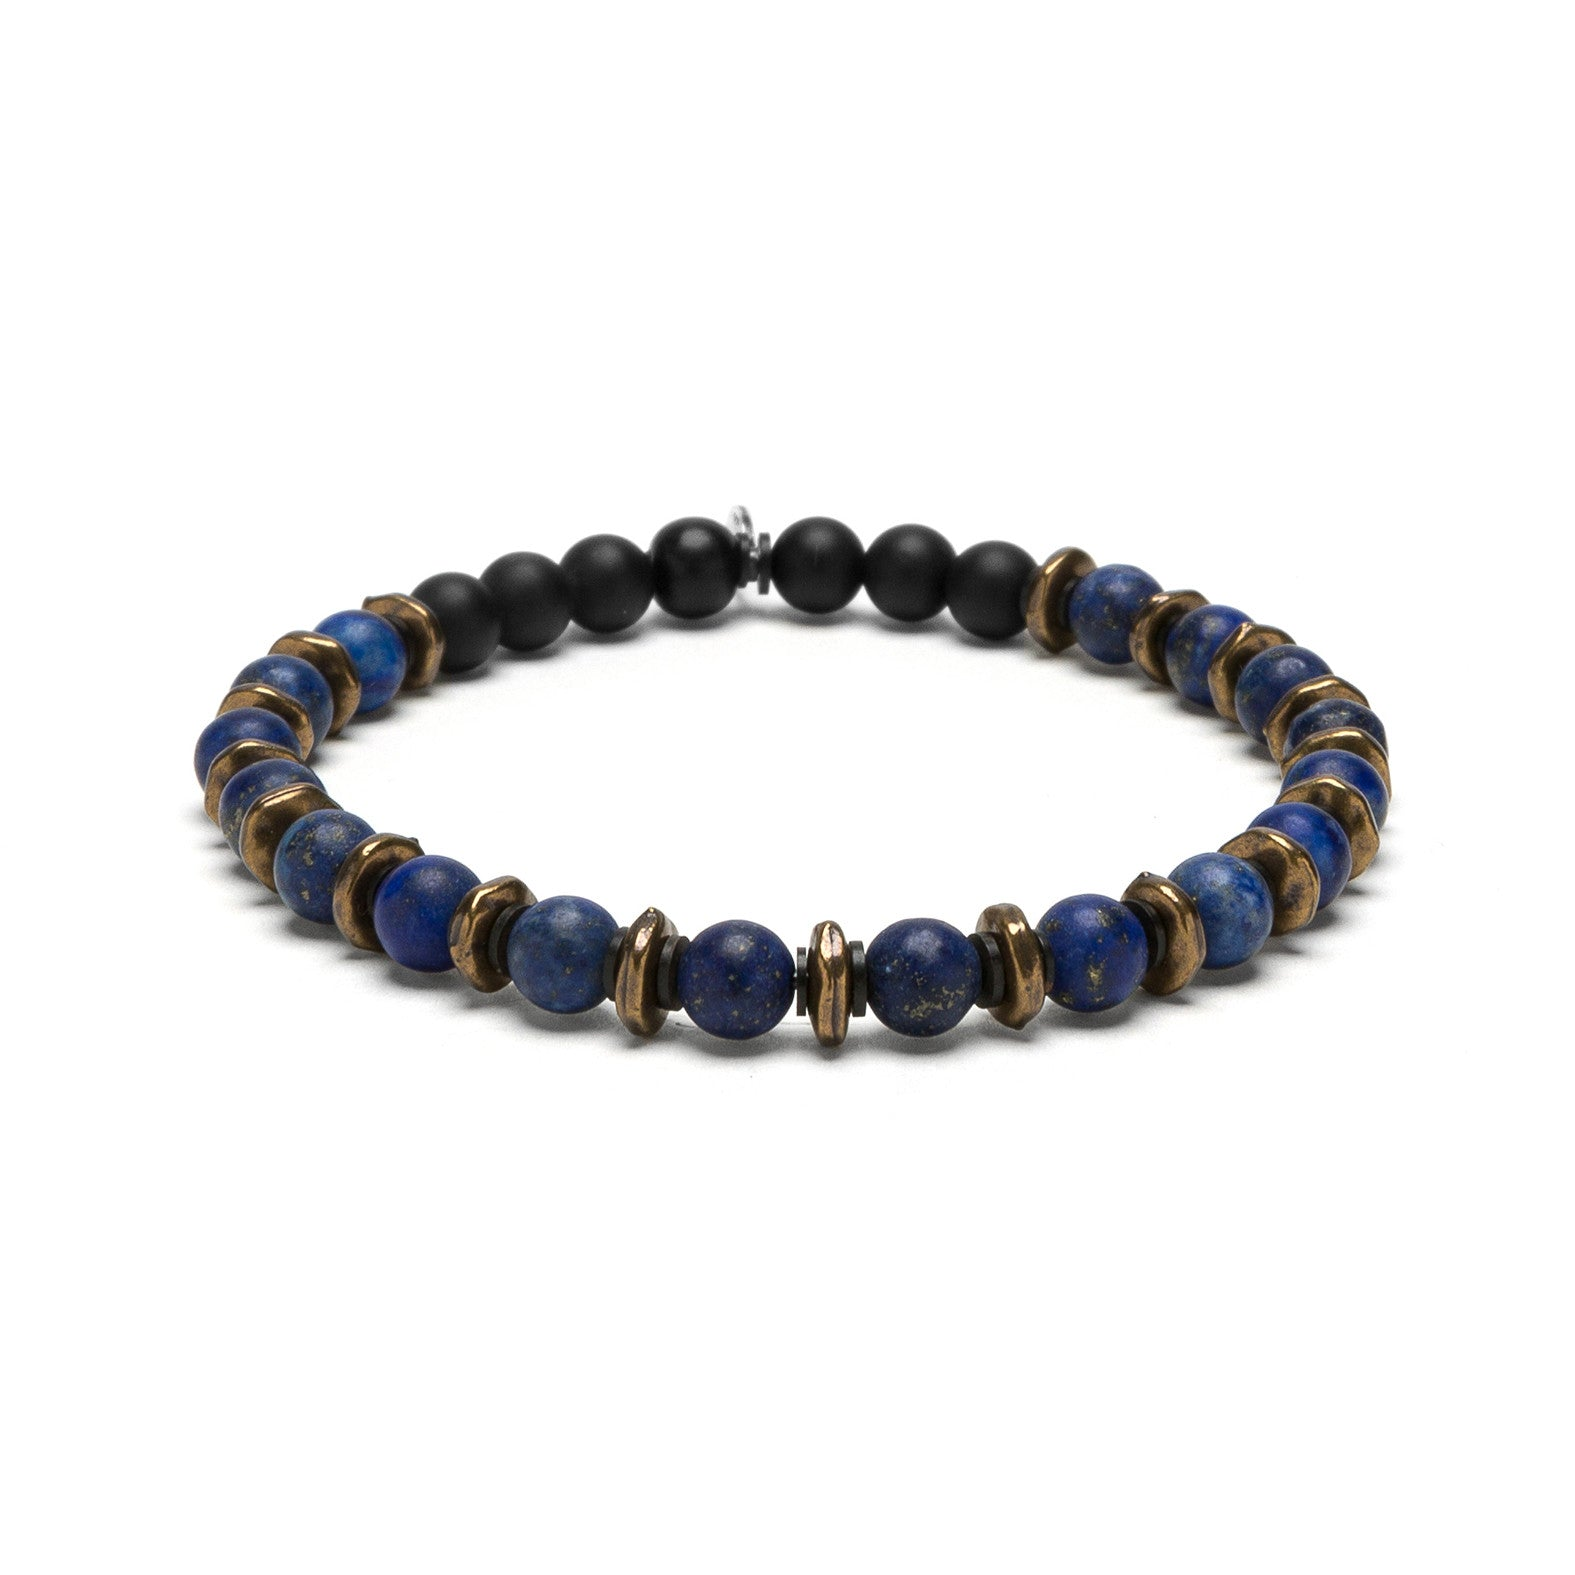 Blue Lapis and Brass Beaded Bracelet